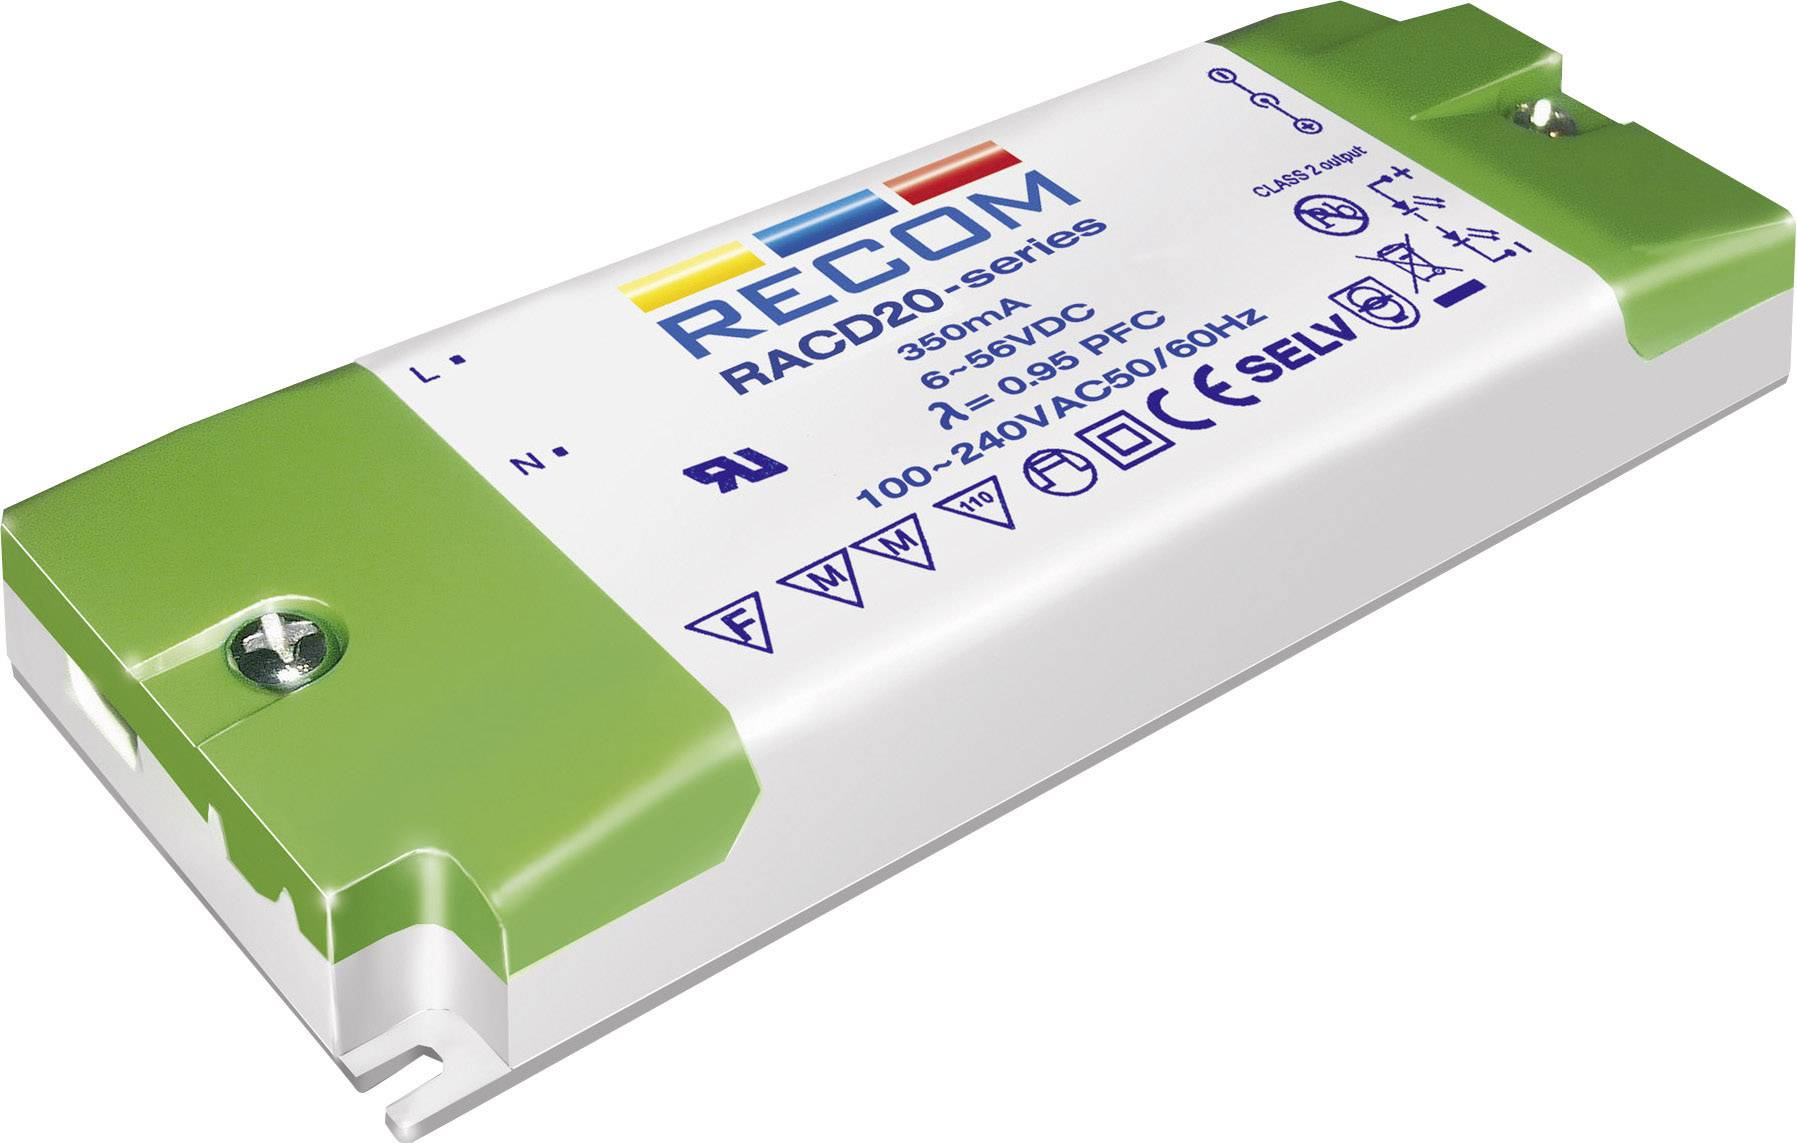 LED driver Recom Lighting RACD20-350, 20 W (max), 0.35 A, 6 - 56 V/DC